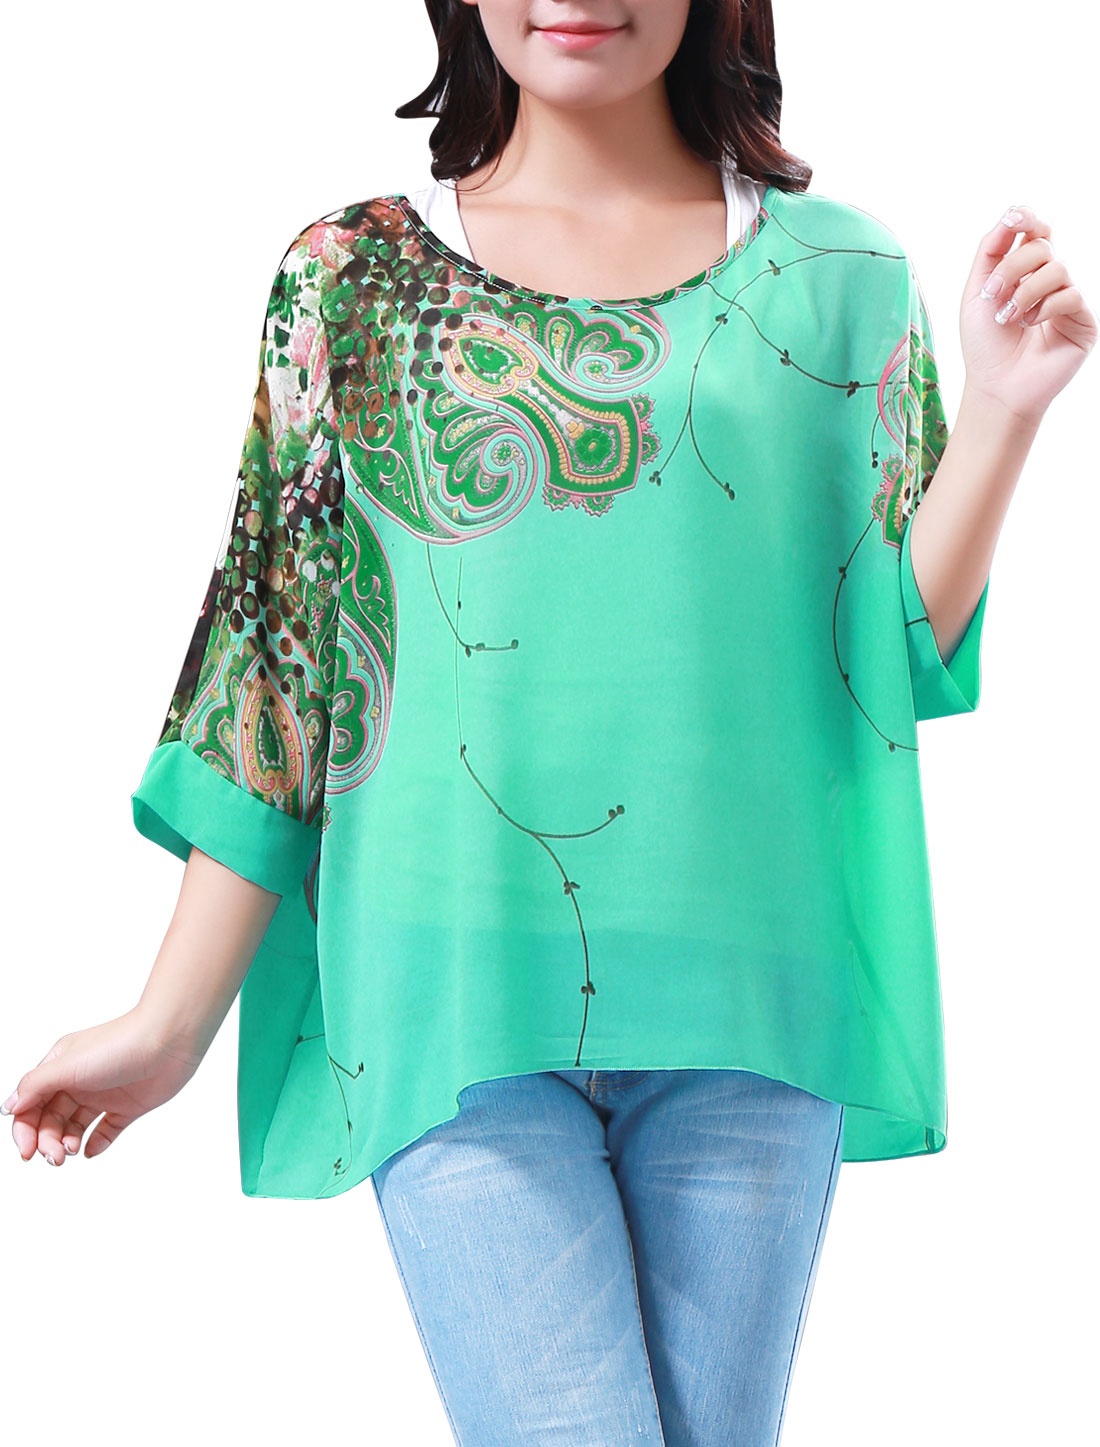 Lady Novelty Print Scoop Neck Loose Chiffon Tunic Top Green XS